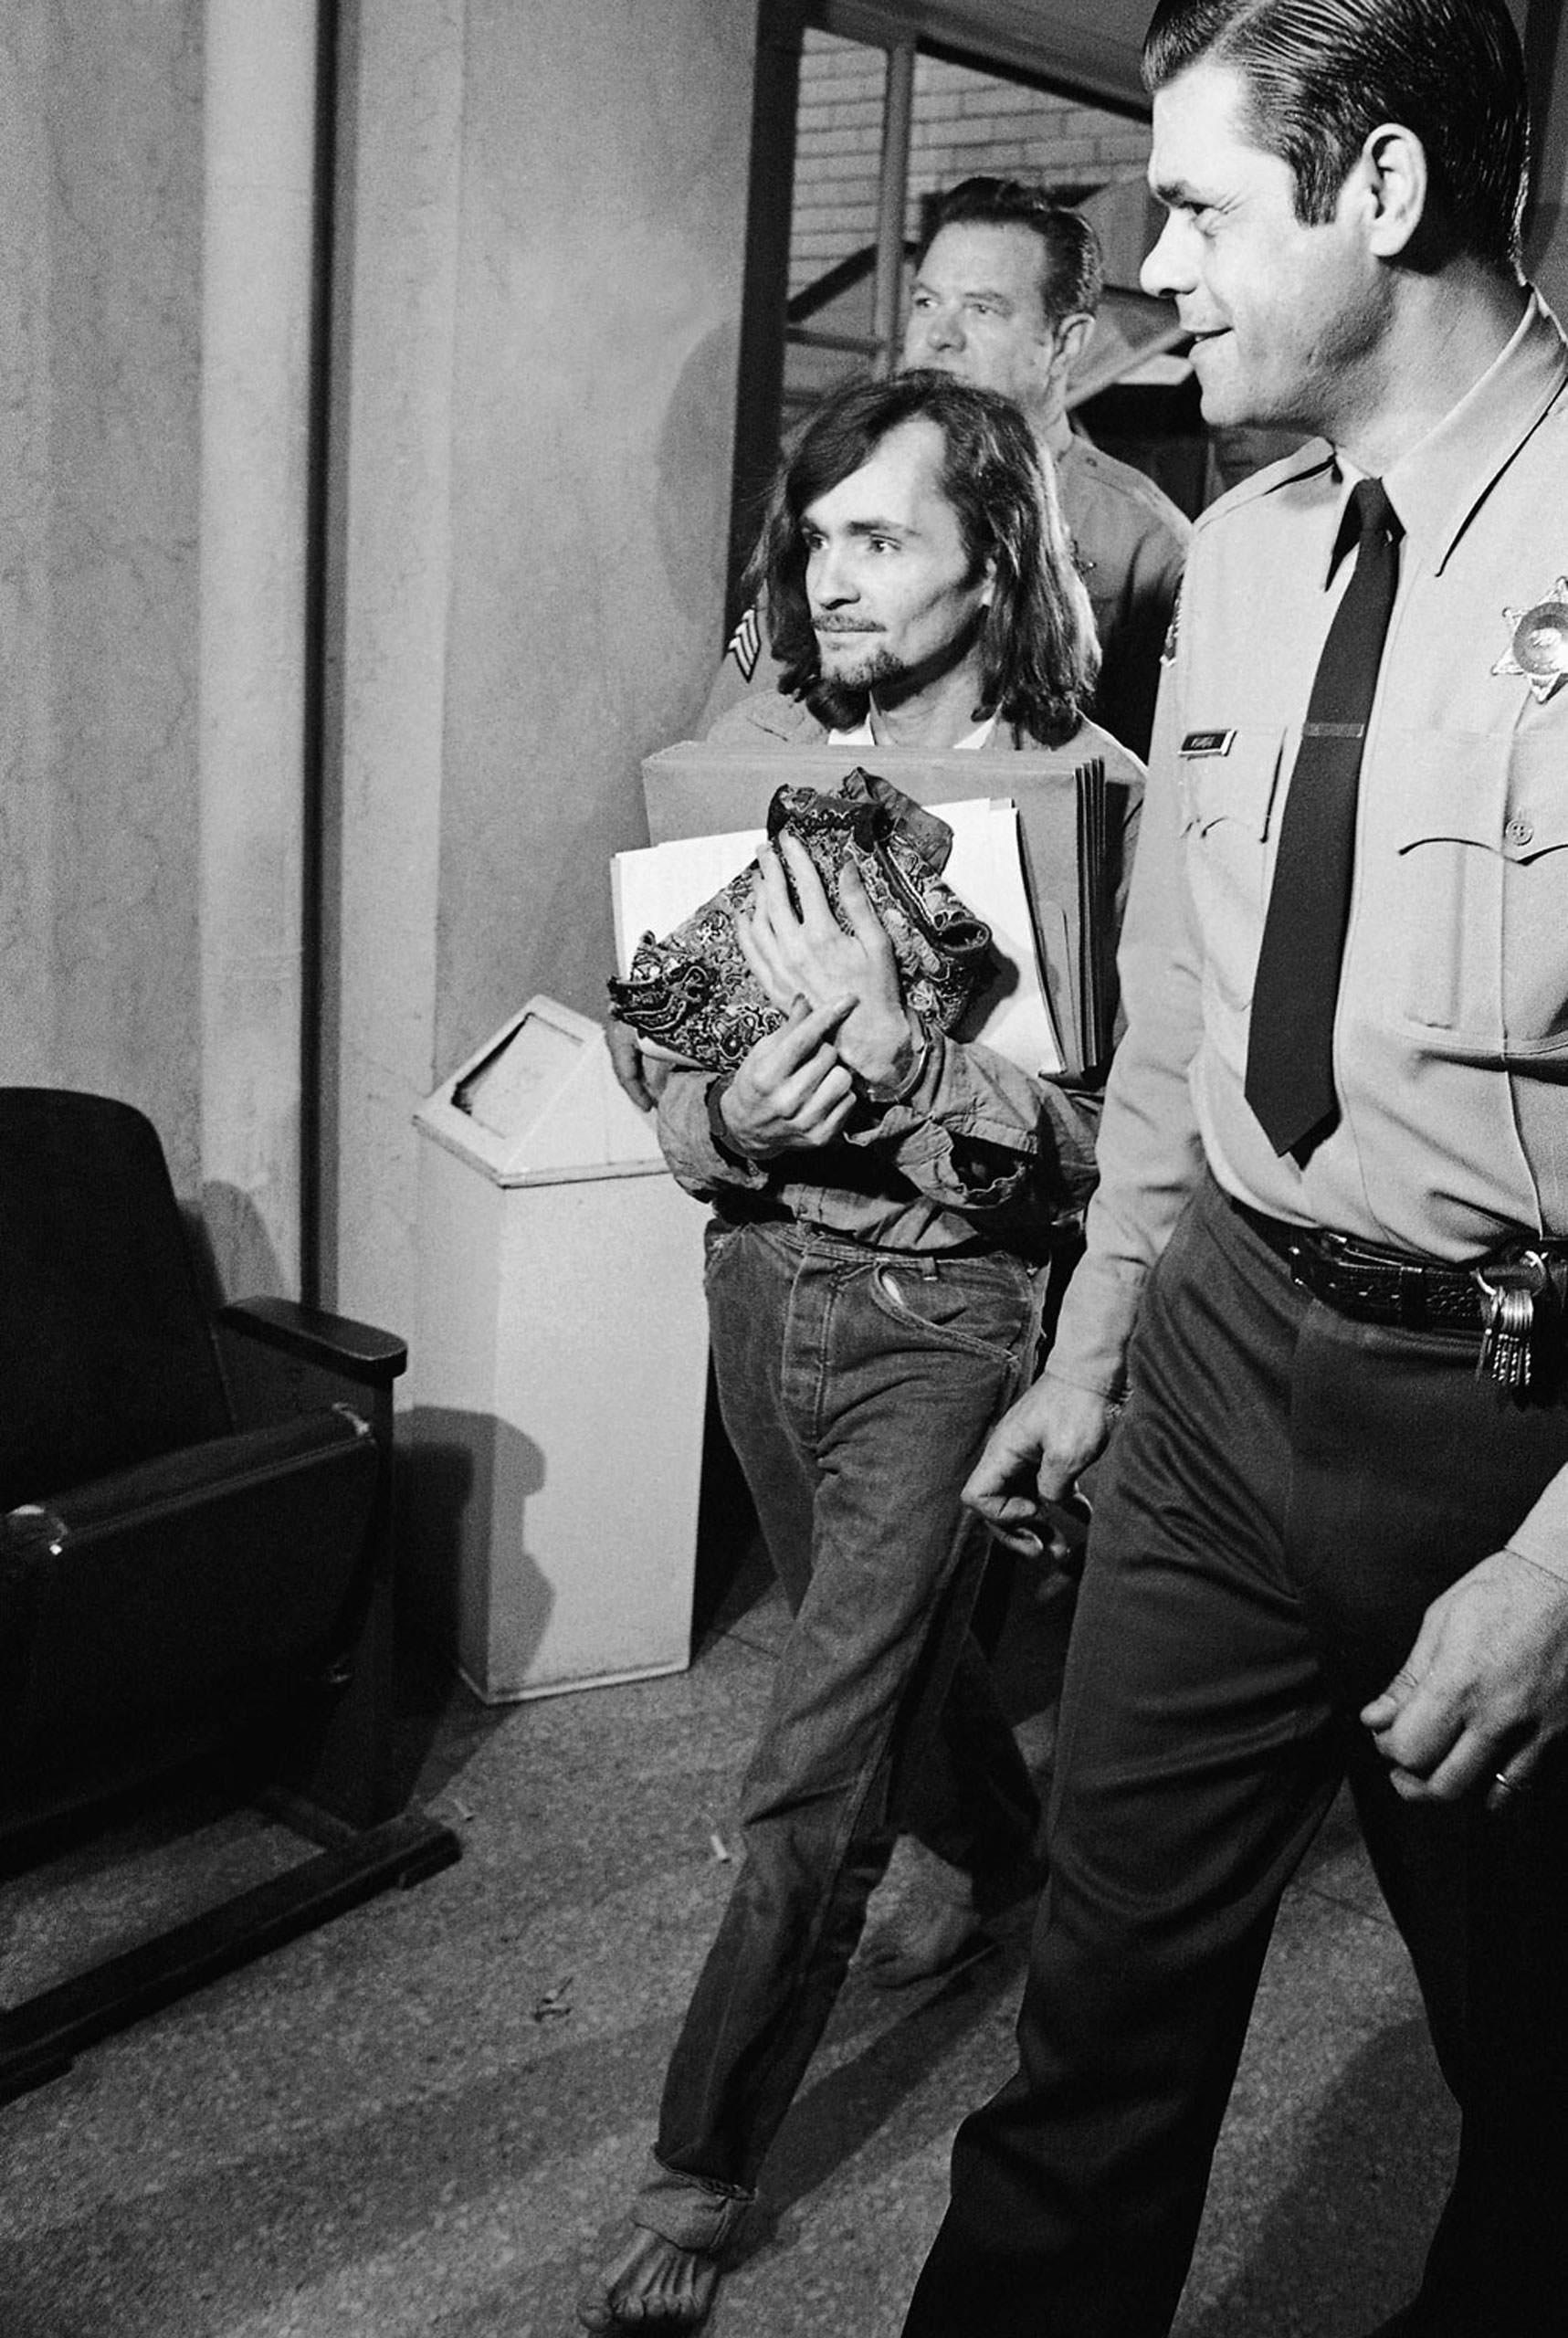 Charles Manson, accused of seven killings including that of actress Sharon Tate, leaves a Los Angeles courtroom, on Feb. 16, 1970 where he was denied a change of venue. The court ruled he can receive a fair trial in Los Angeles despite massive pretrial publicity.